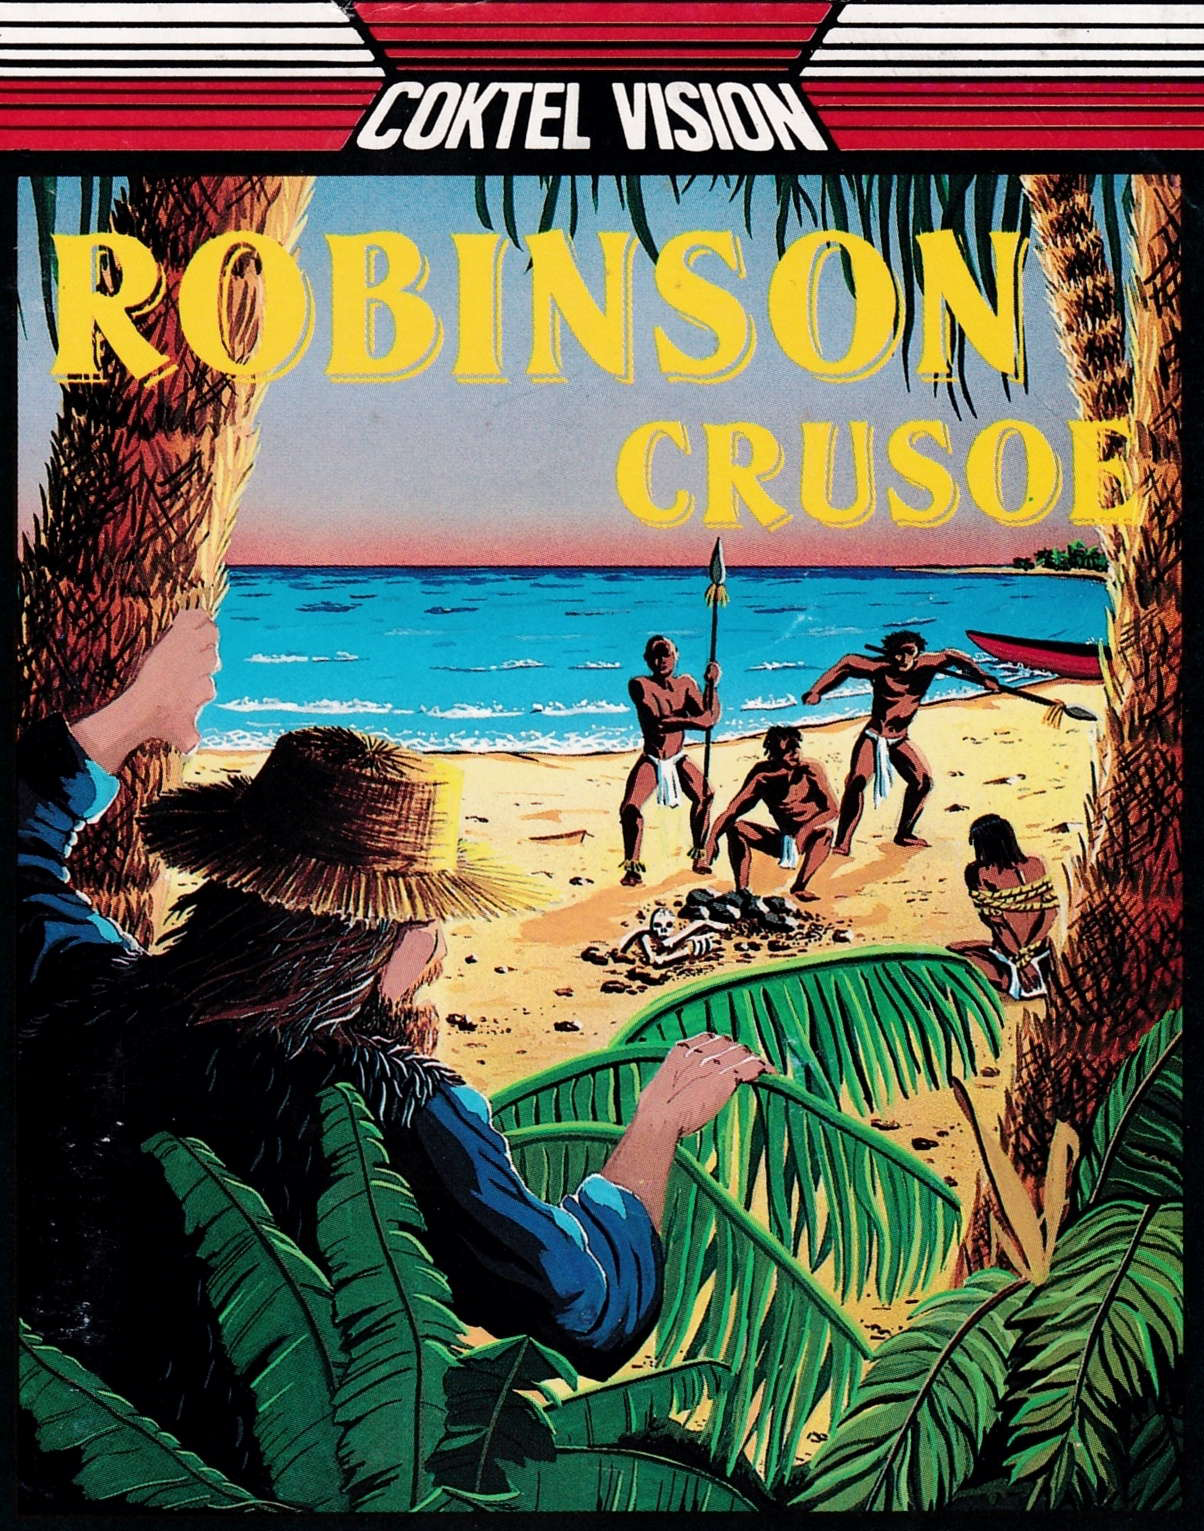 cover of the Amstrad CPC game Robinson Crusoe  by GameBase CPC